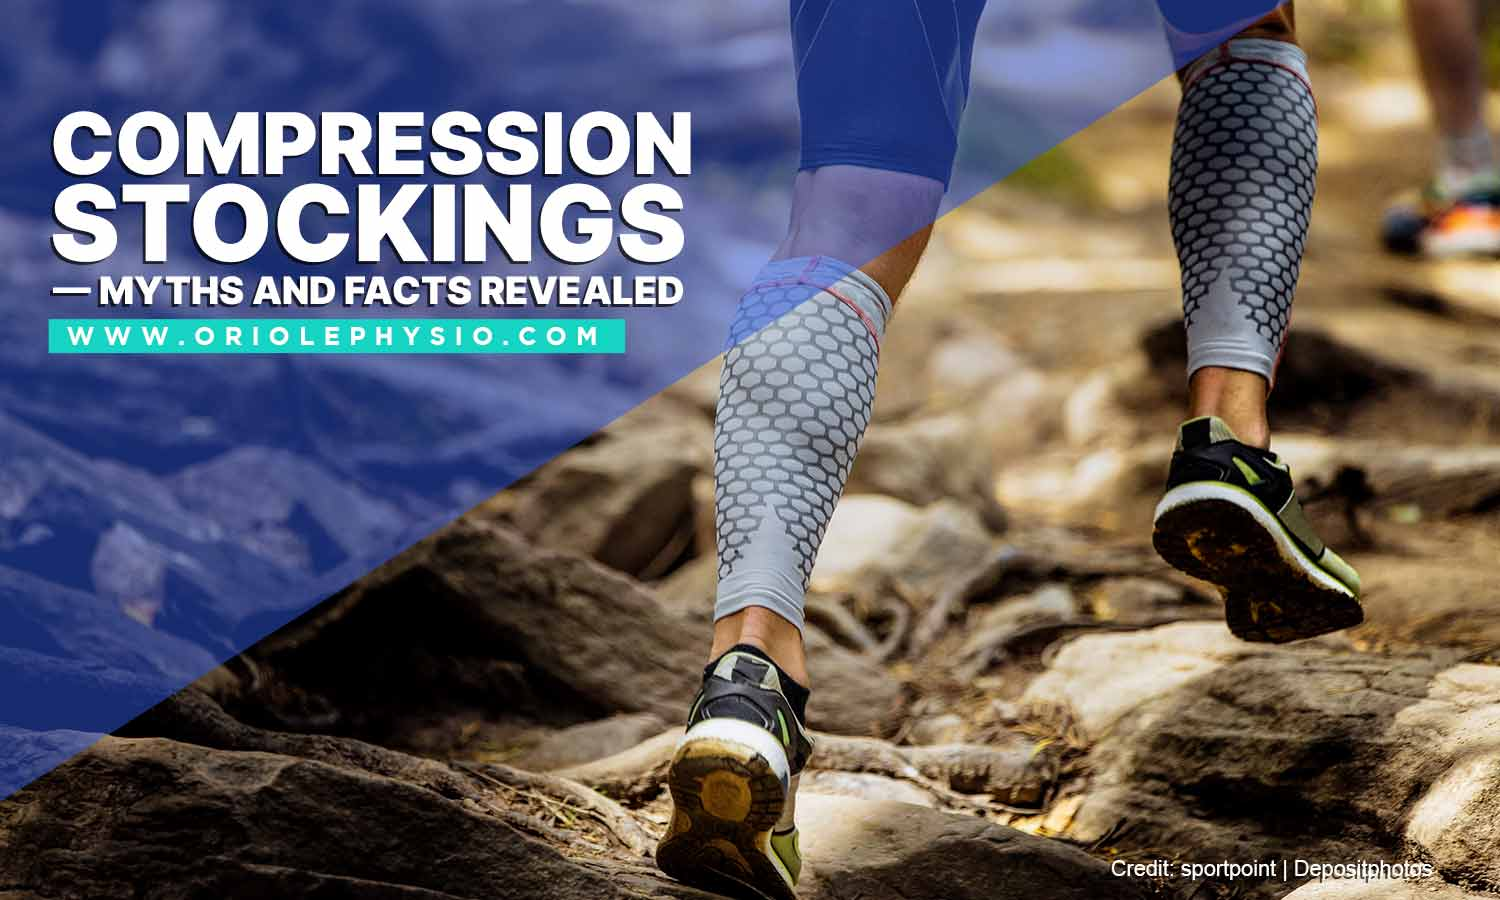 Compression Stockings — Myths And Facts Revealed